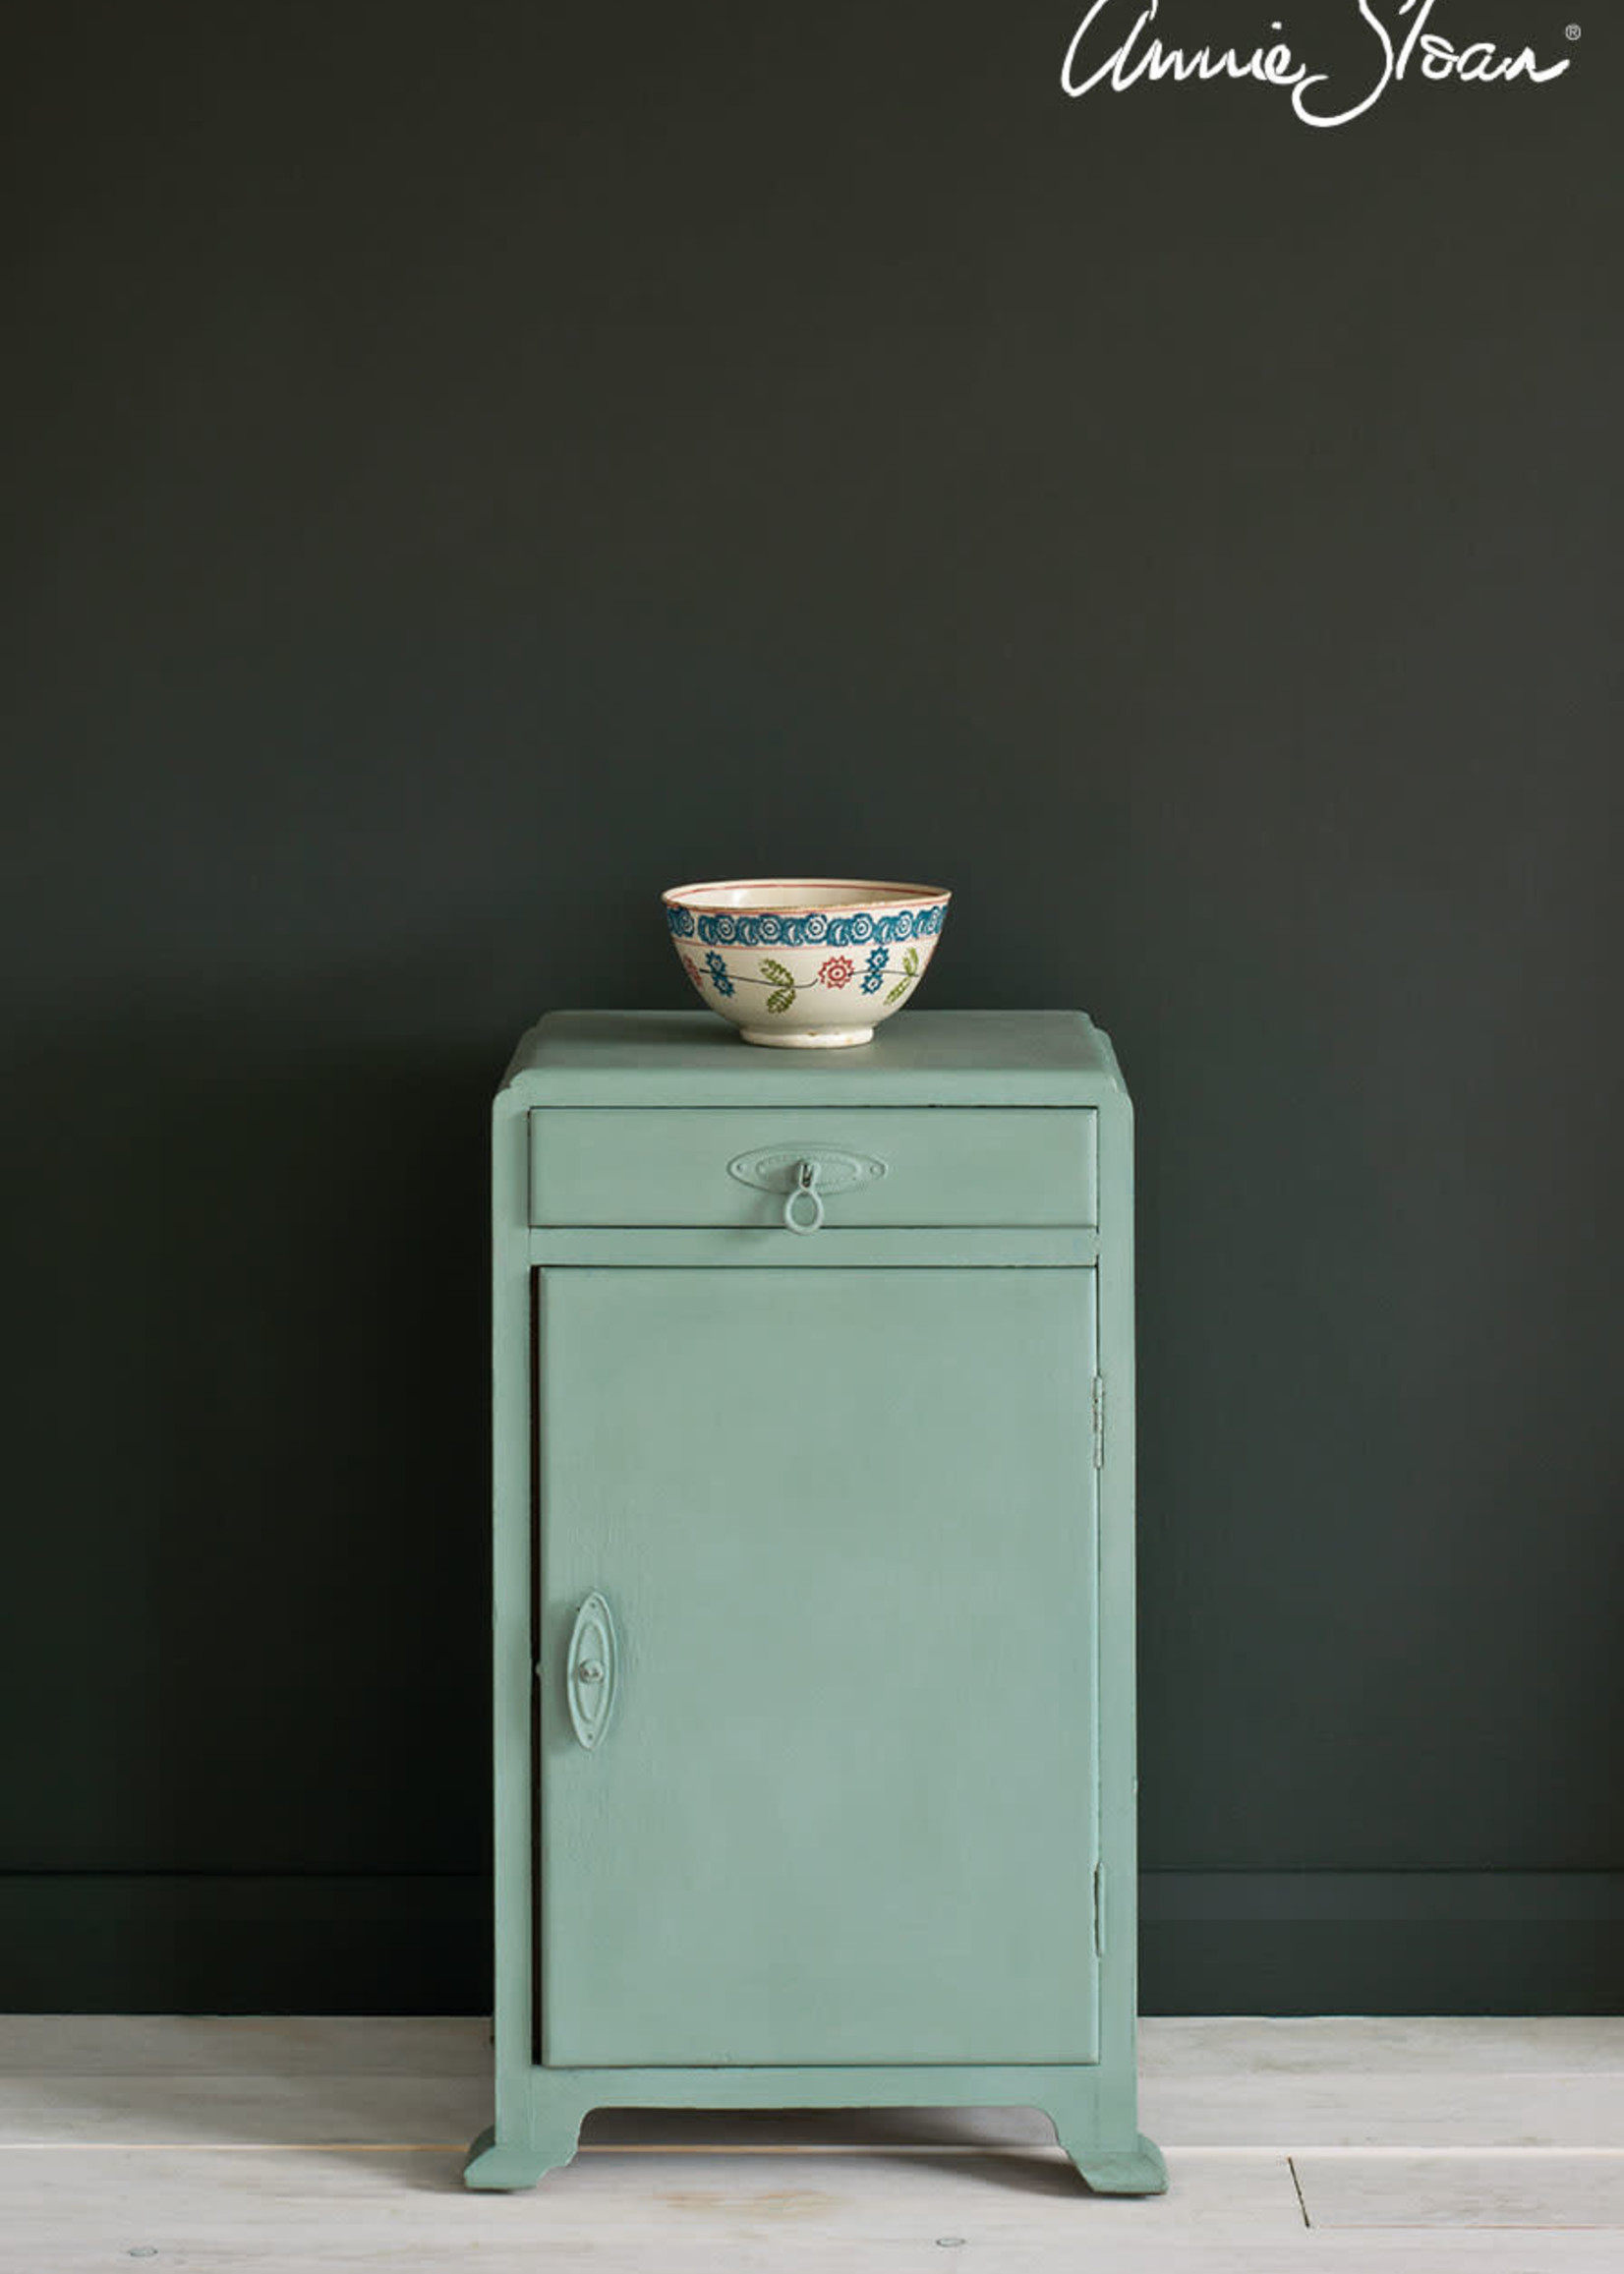 Bloom Intro to ChalkPaint Workshop September 2021